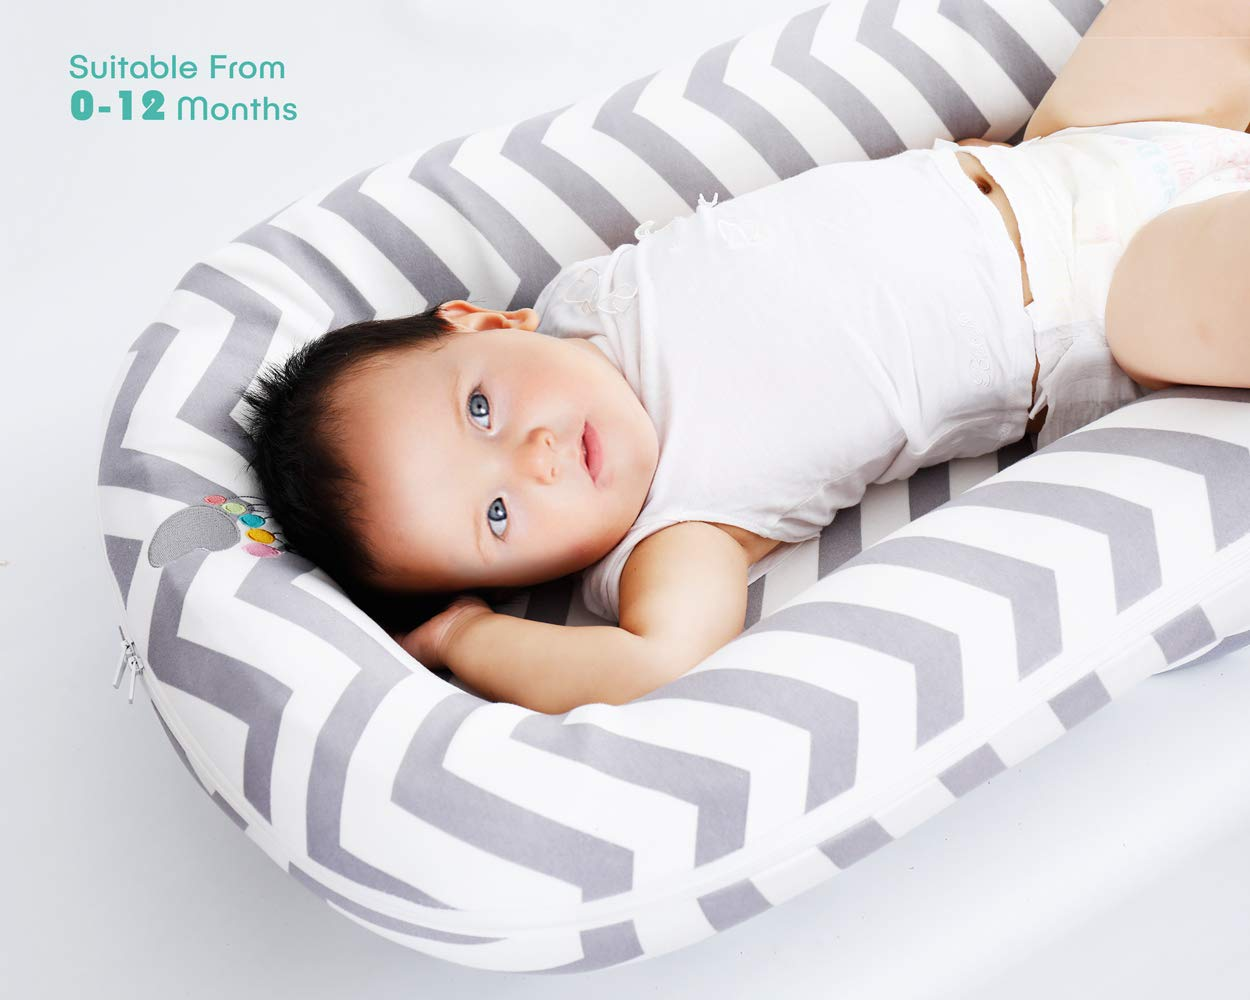 ECORE-Newborn-Baby-Lounger,Co-Sleeping,Infant Cudding Nest,Travel Bed-4 in 1,Breathable,Ultra Soft,Cover Removable for 0-12 Moth Grey Chevron